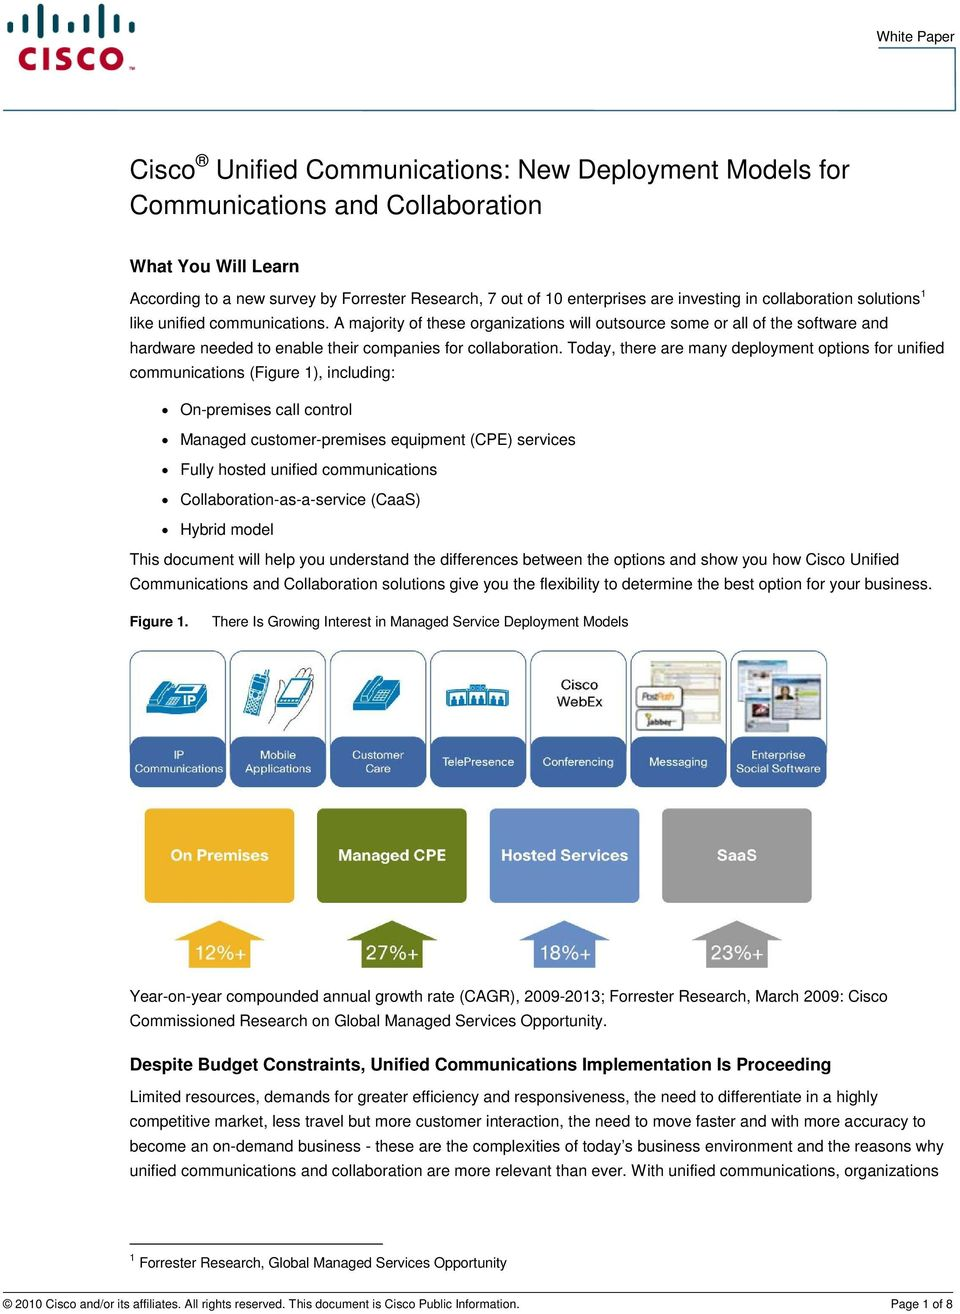 Today, there are many deployment options for unified communications (Figure 1), including: On-premises call control Managed customer-premises equipment (CPE) services Fully hosted unified